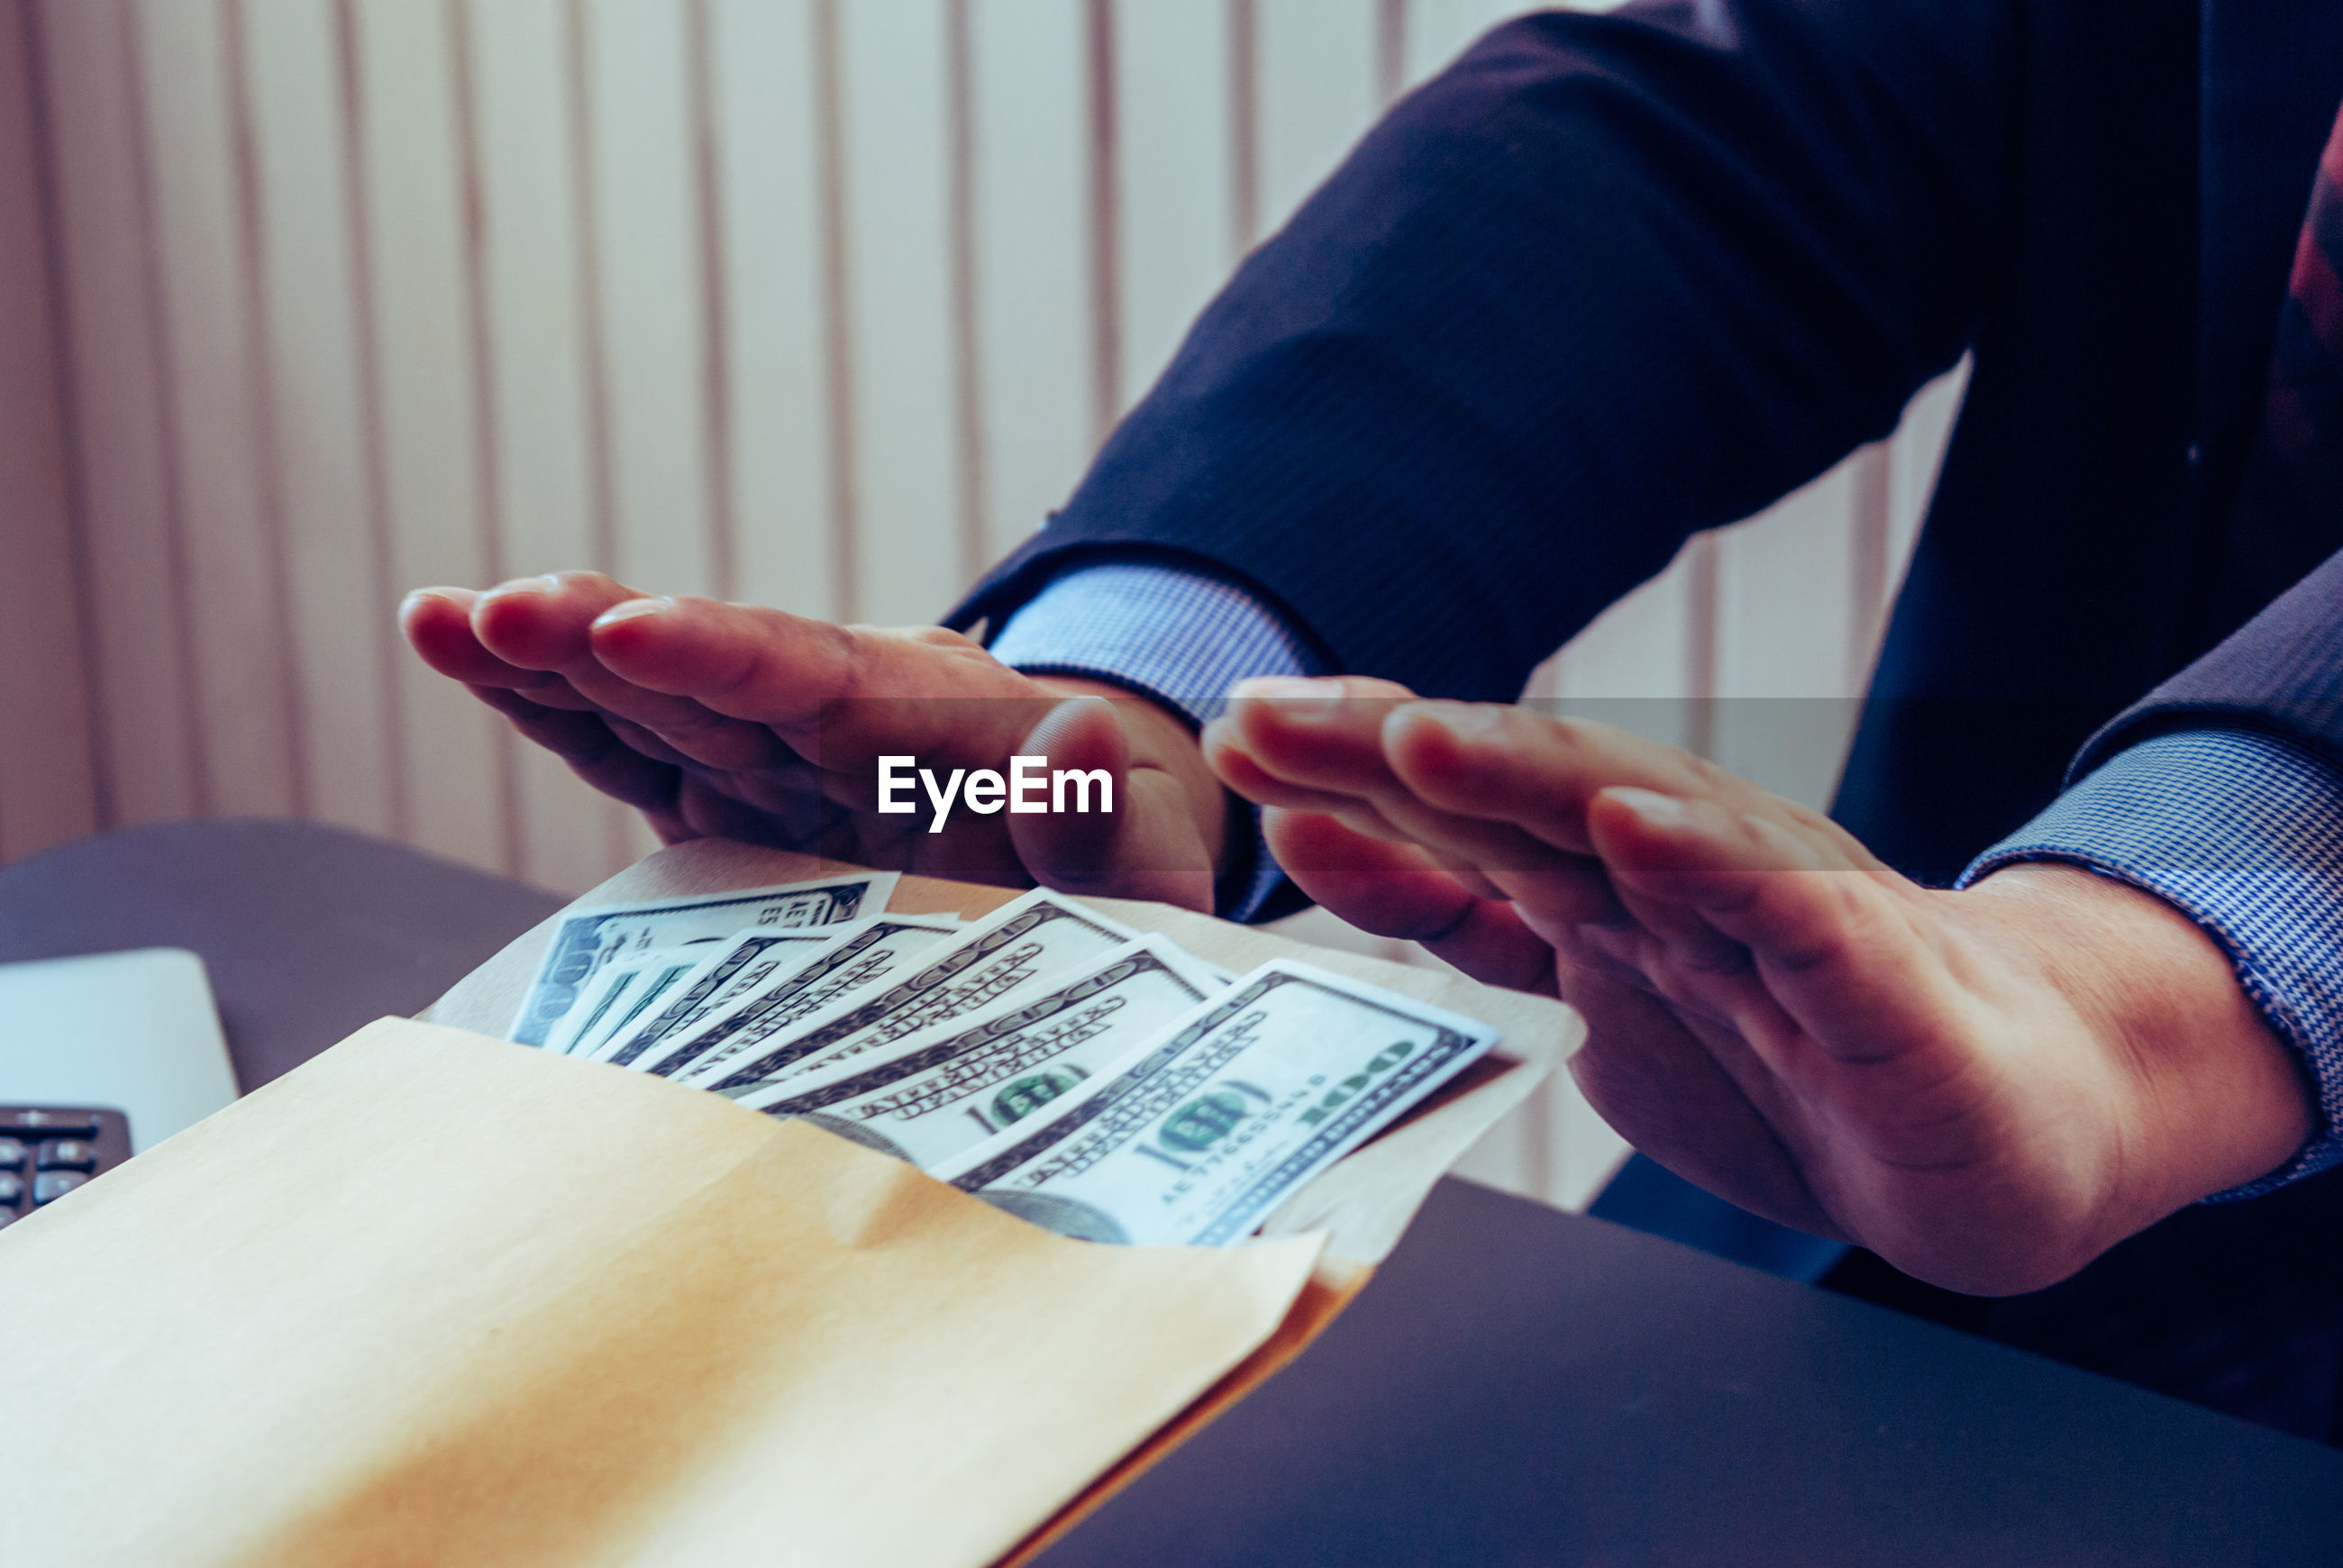 Midsection of person rejecting bribe